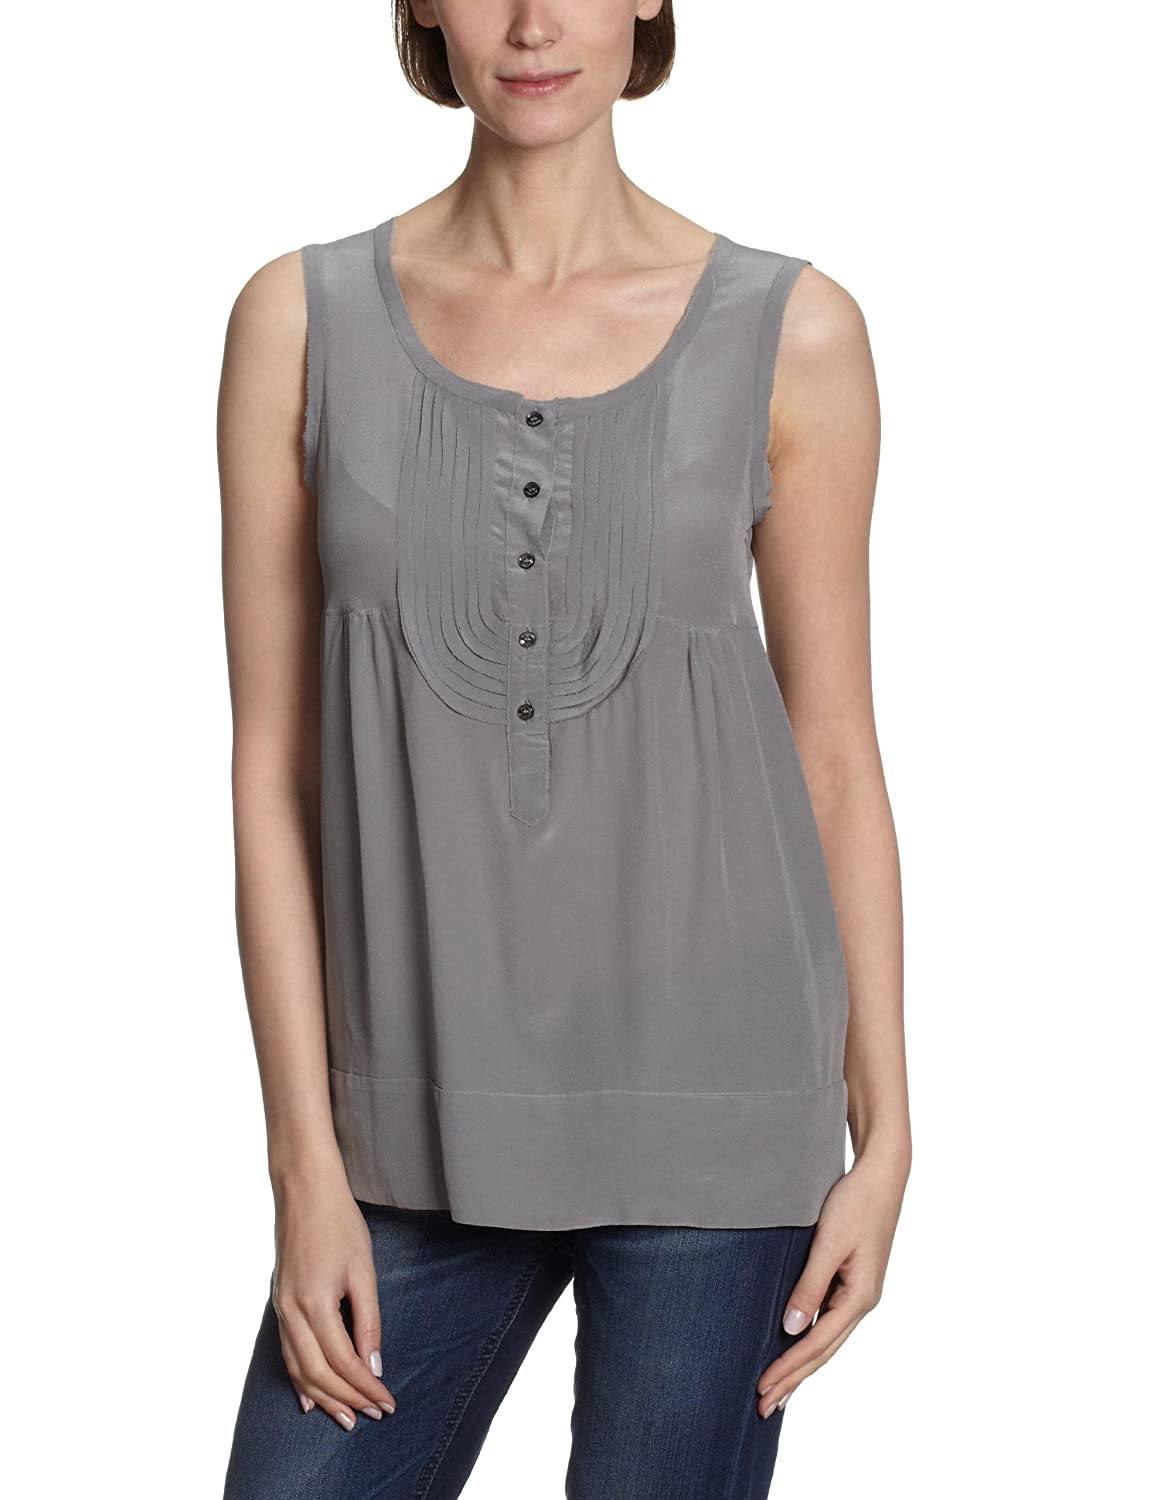 Henry Cotton's Damen Top 120135960800 Seidentop